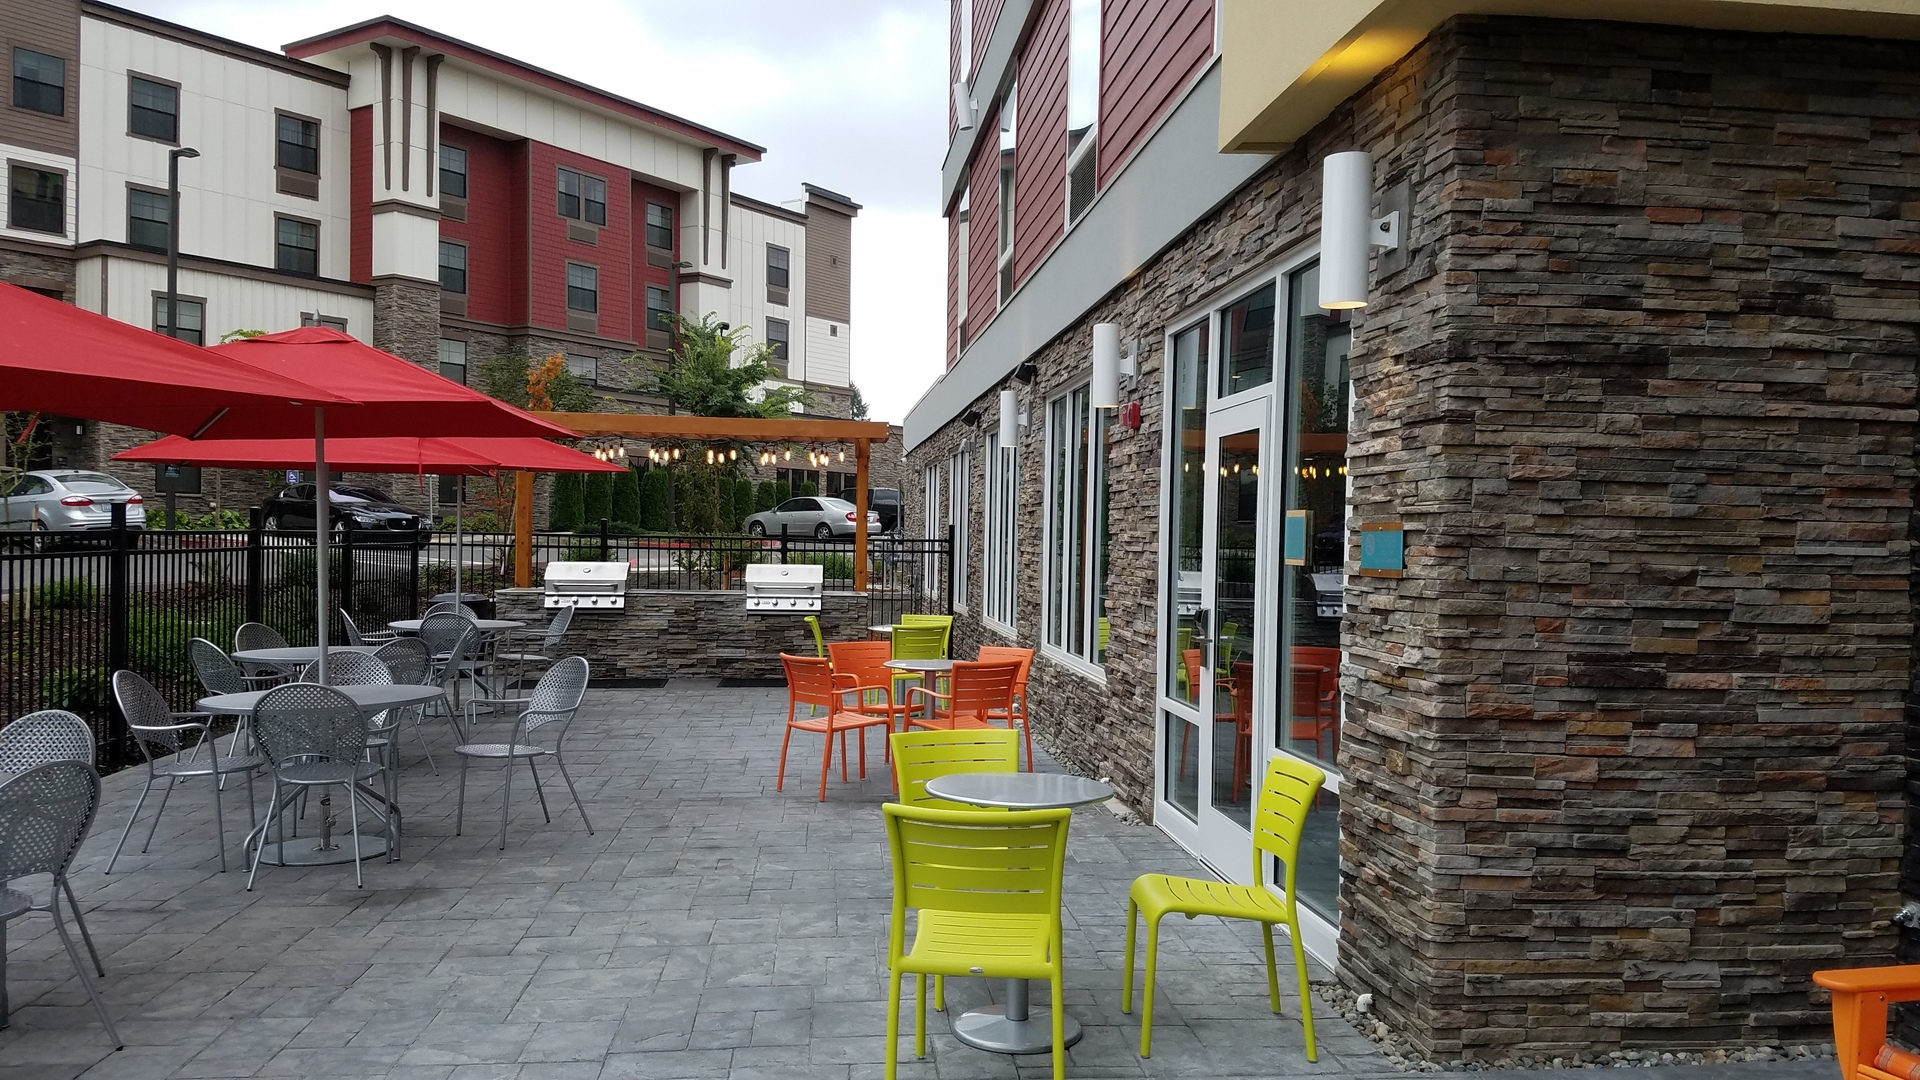 Outdoor patio and dining area can be found at Home2Suites by Hilton.